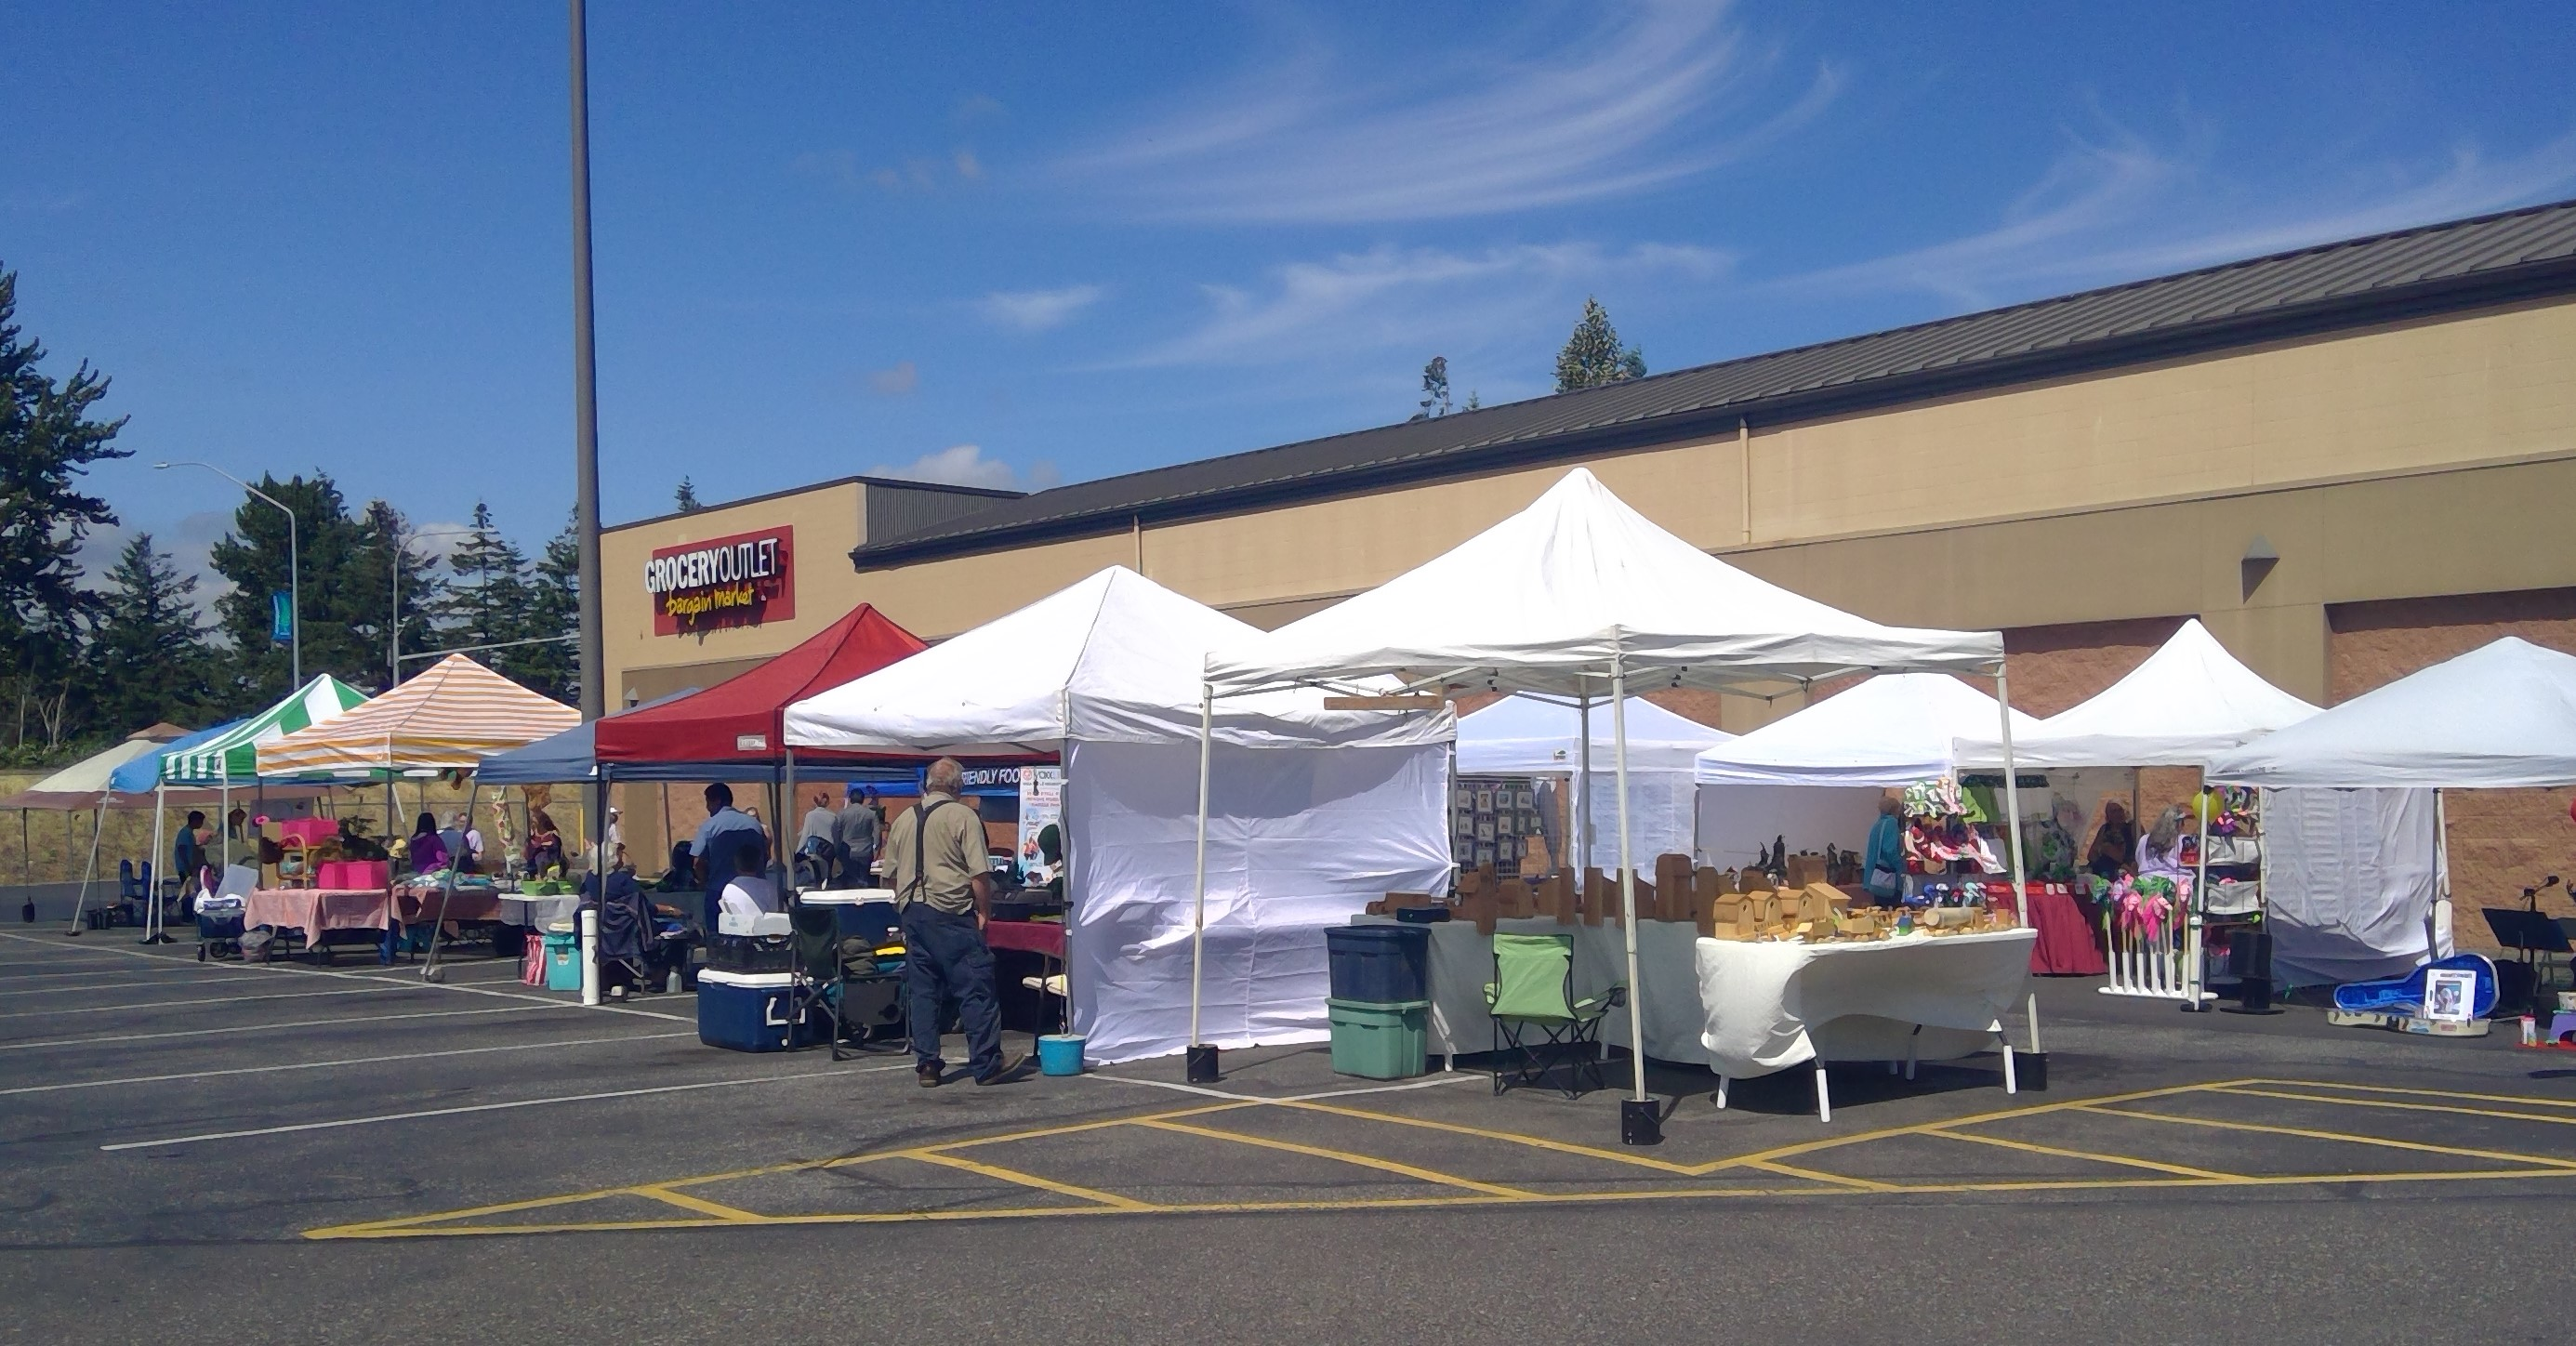 Ferndale Farmers Market vendors set up in the west parking lot of the Ferndale Grocery Outlet (June 14, 2019). Photo: My Ferndale News